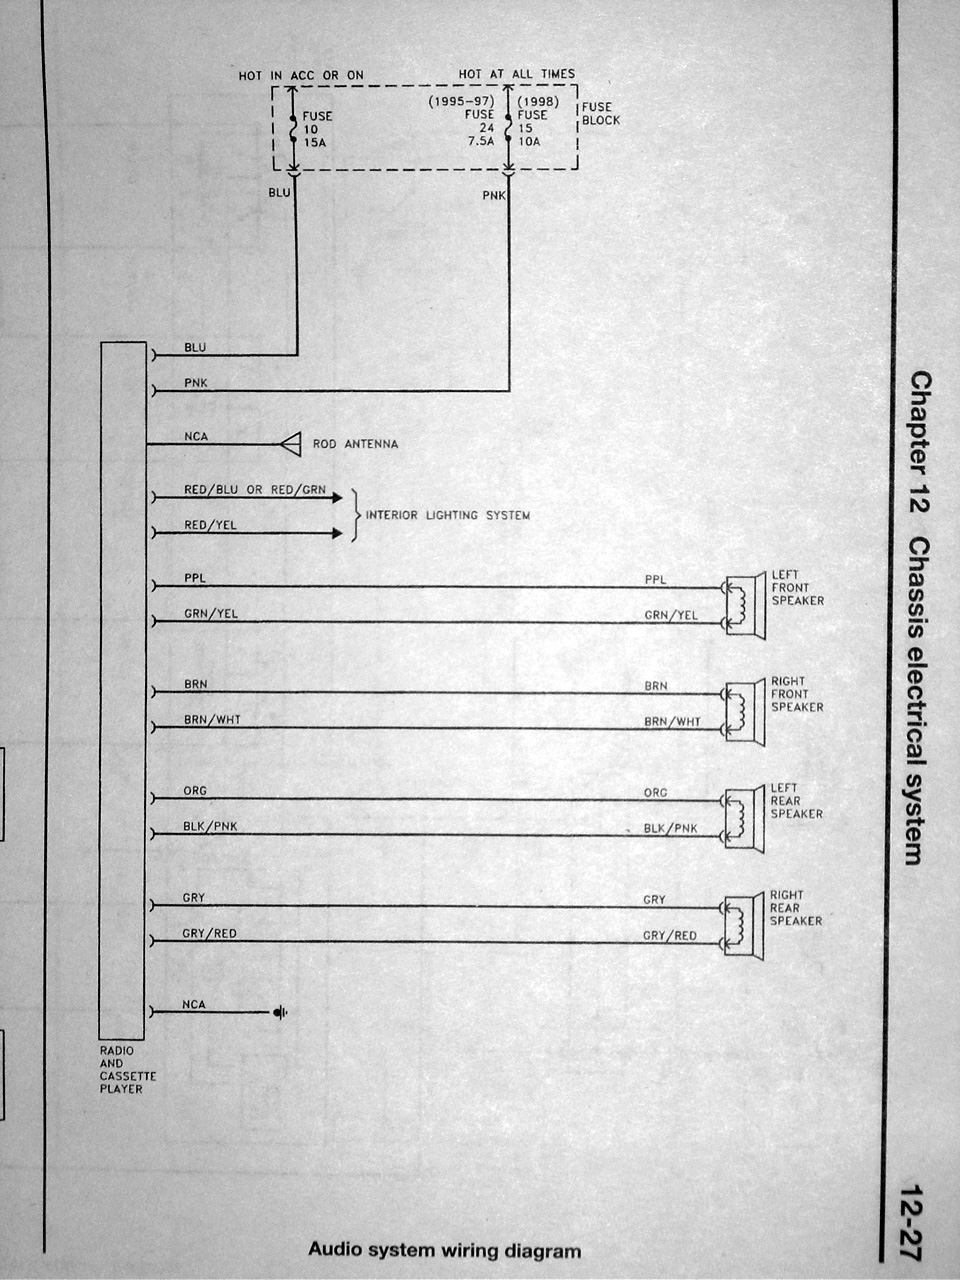 DSC01849?resize=665%2C887 poor mans ipod connector for 2005 altima bose nissan forums 1998 nissan altima o2 sensor wiring diagram at crackthecode.co